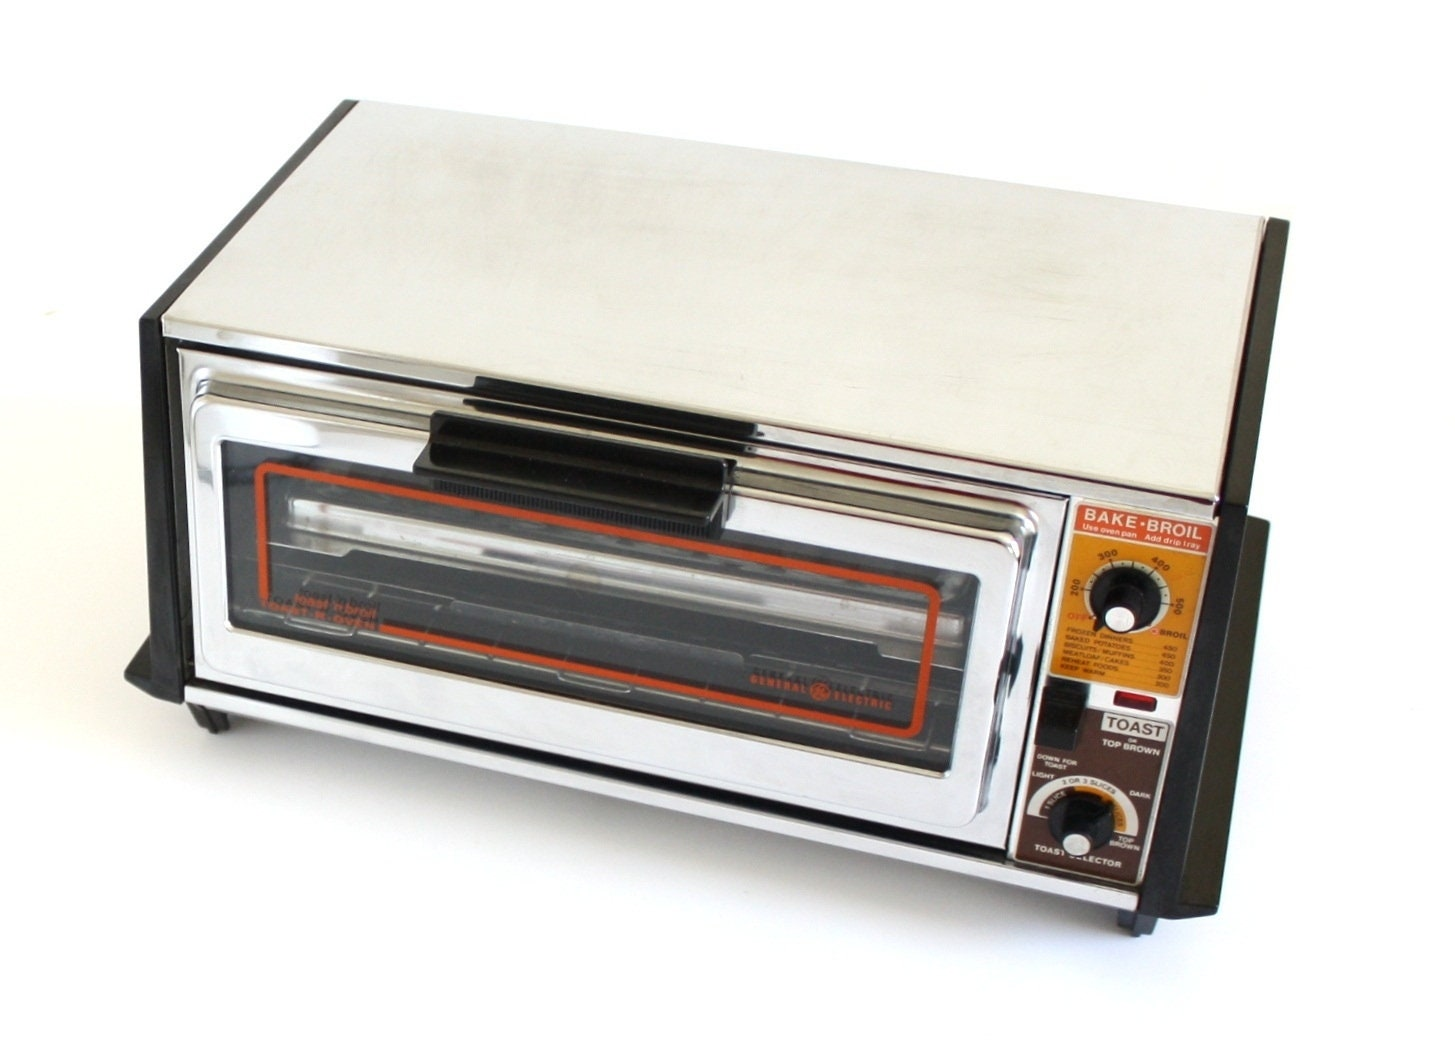 General Electric Toast n Broil Toaster Oven A10T26 GE Toast R